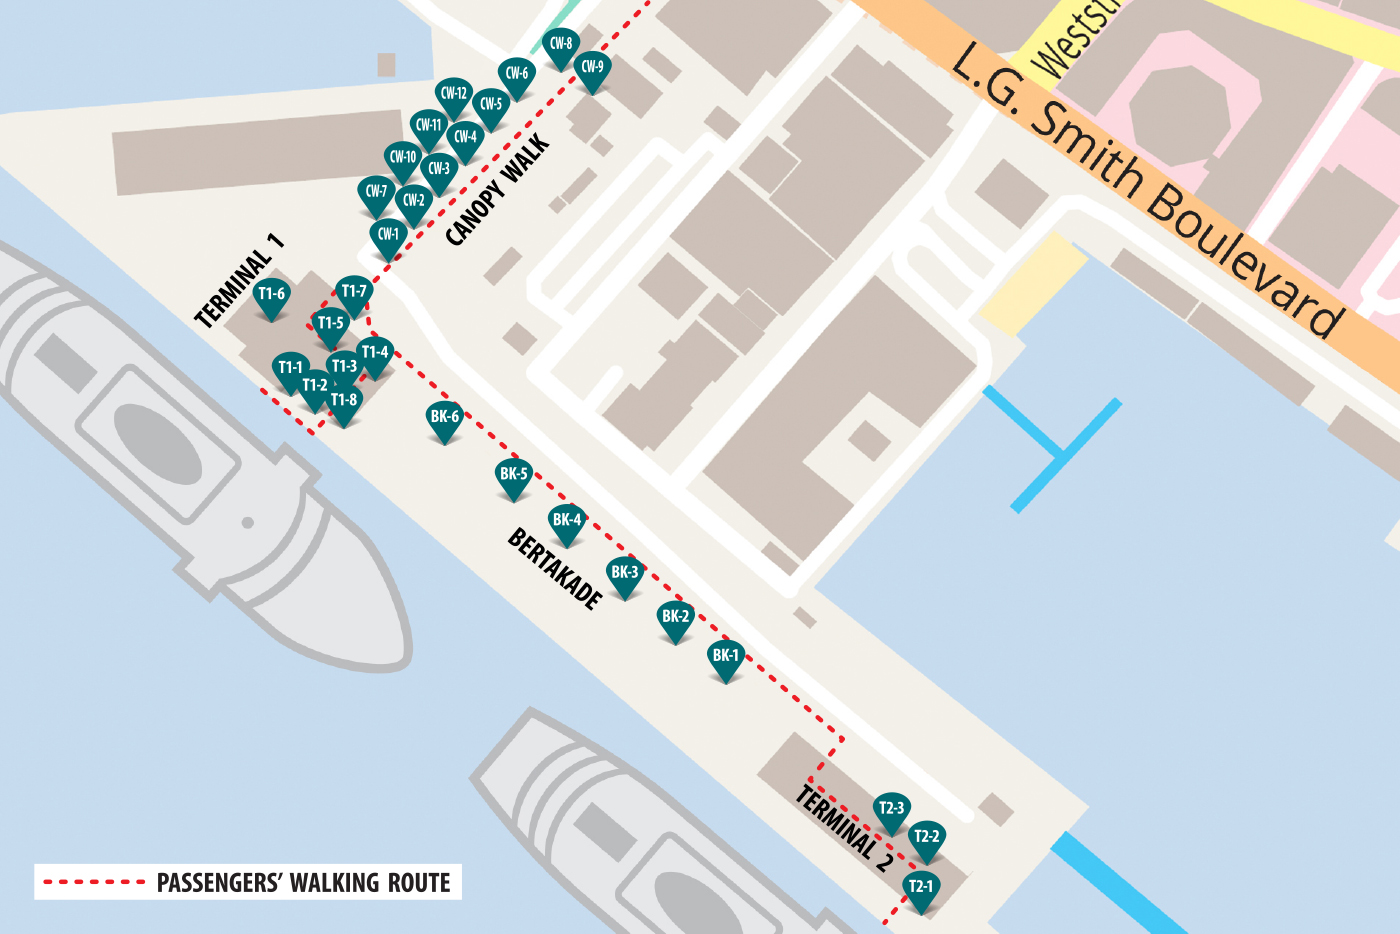 A map of the Cruise Terminal with all the advertisement locations